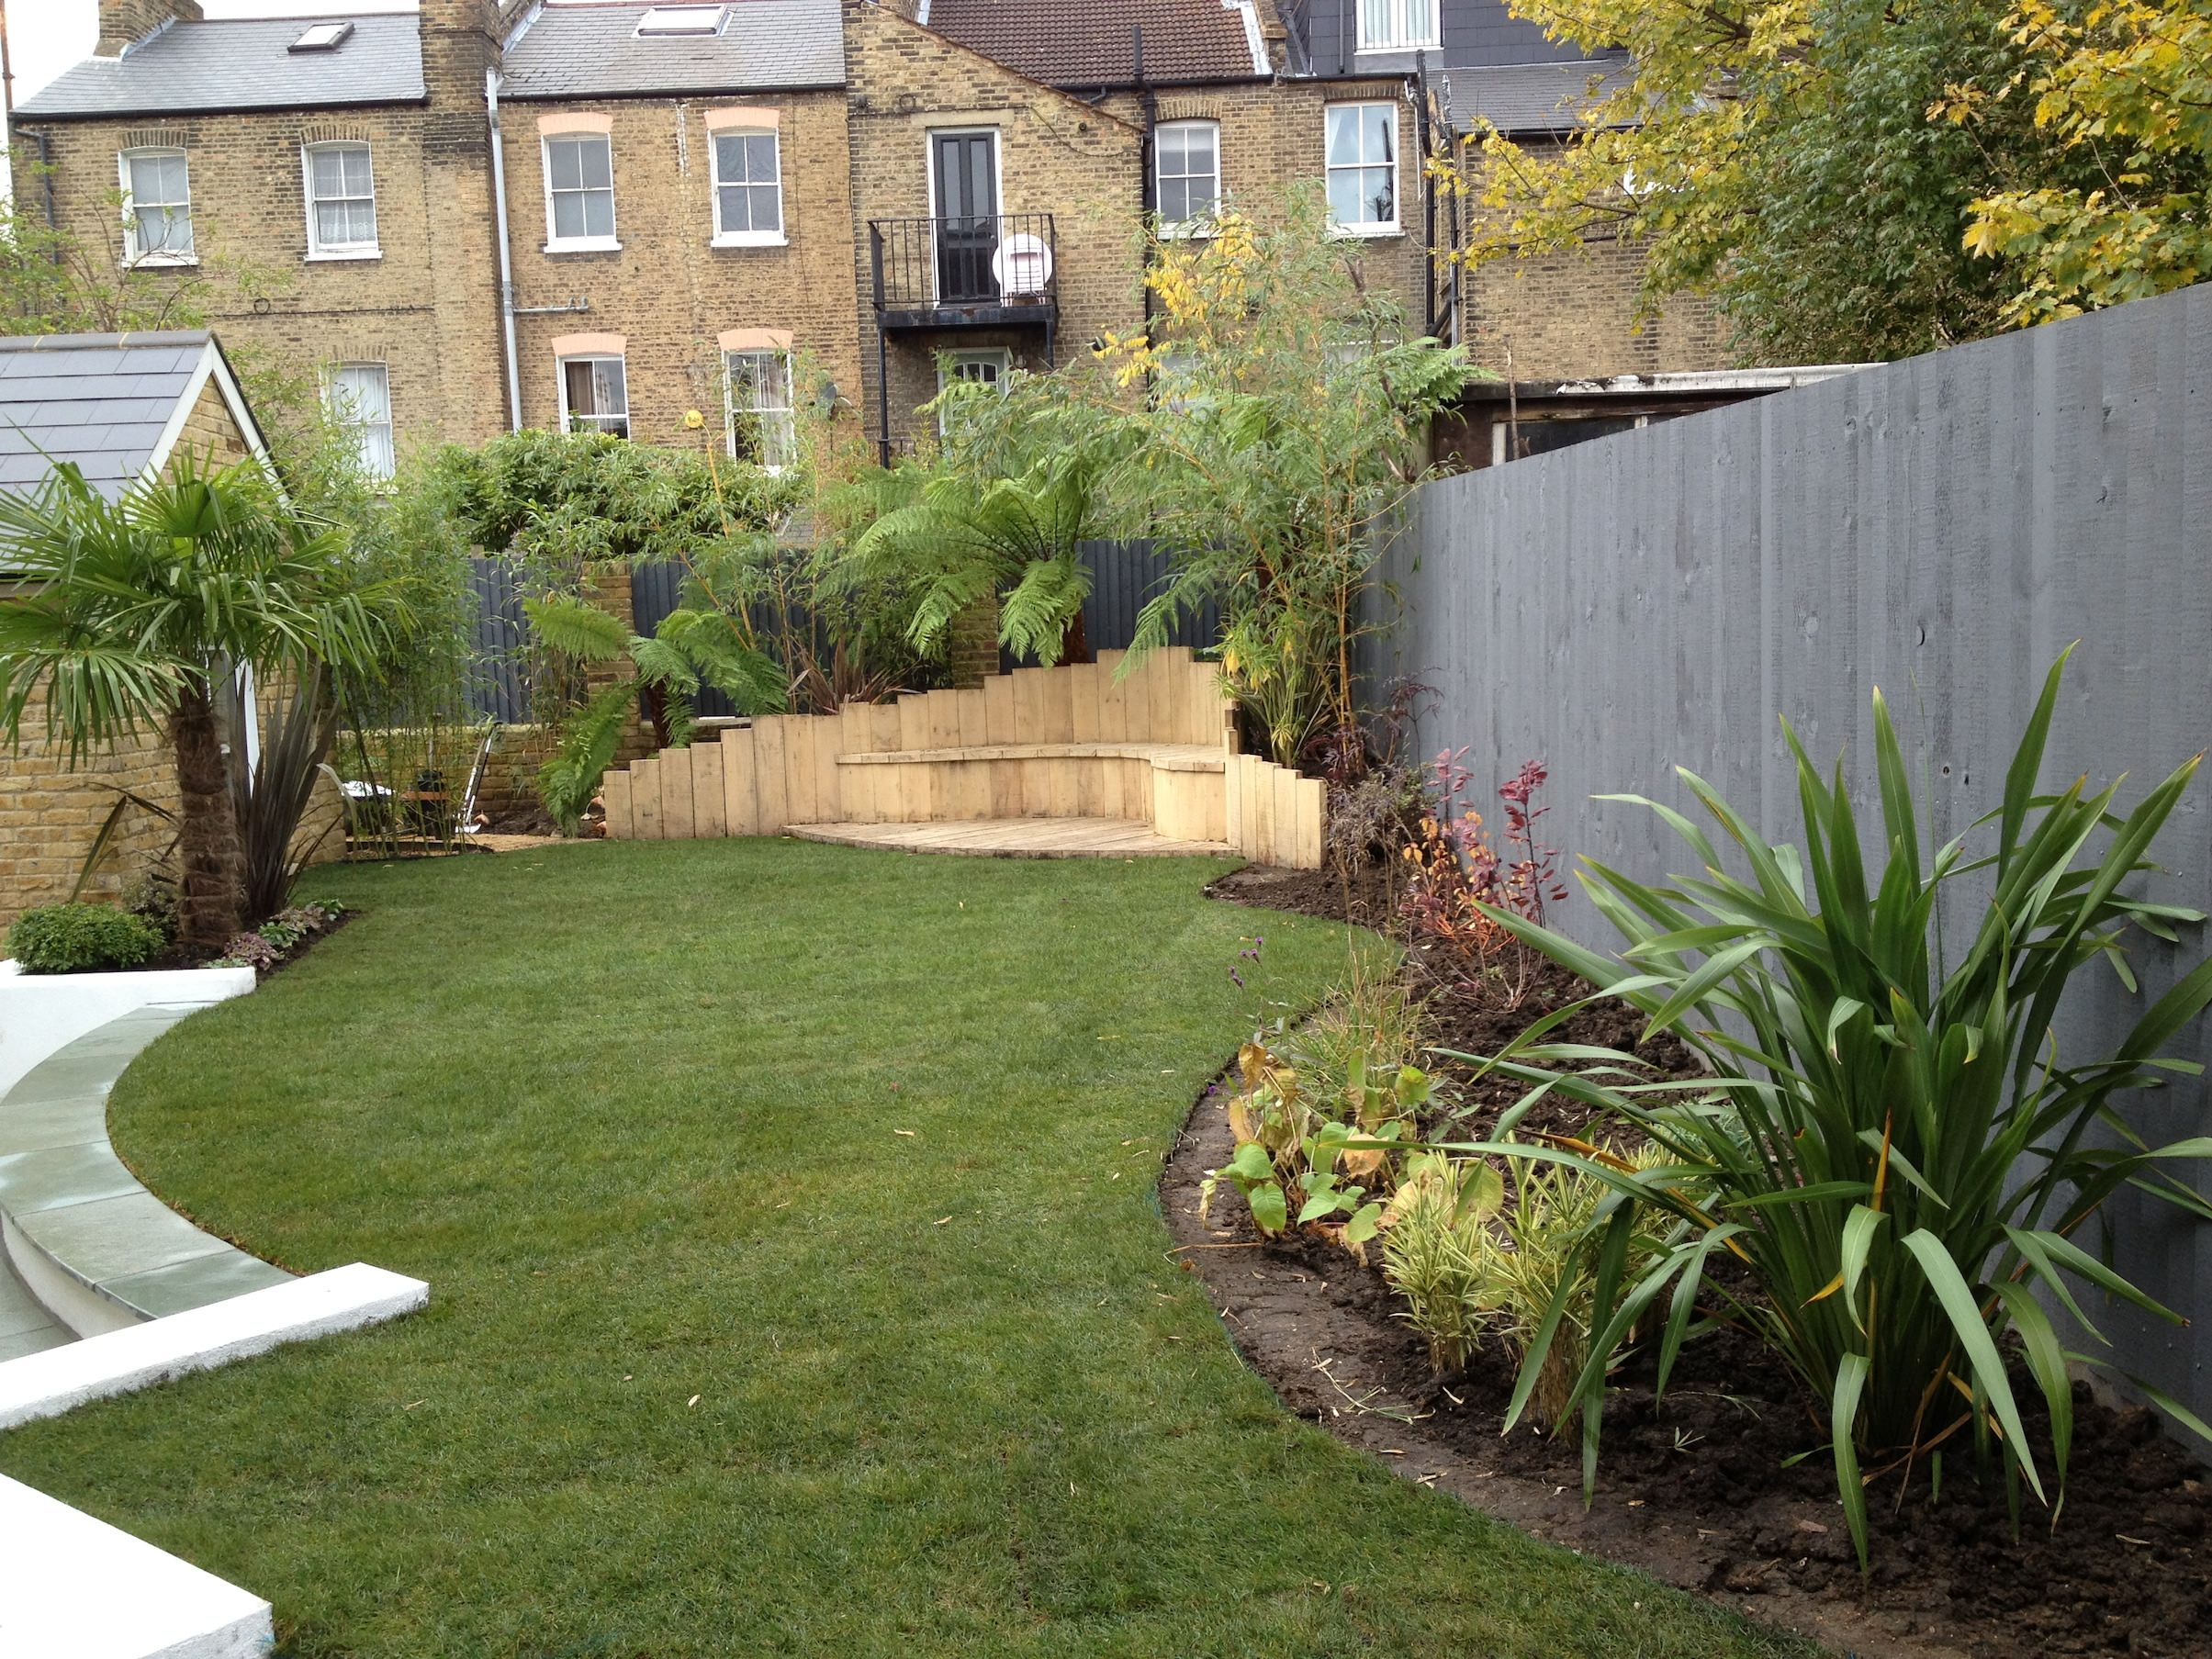 Low maintenance garden designs garden club london for Create garden design